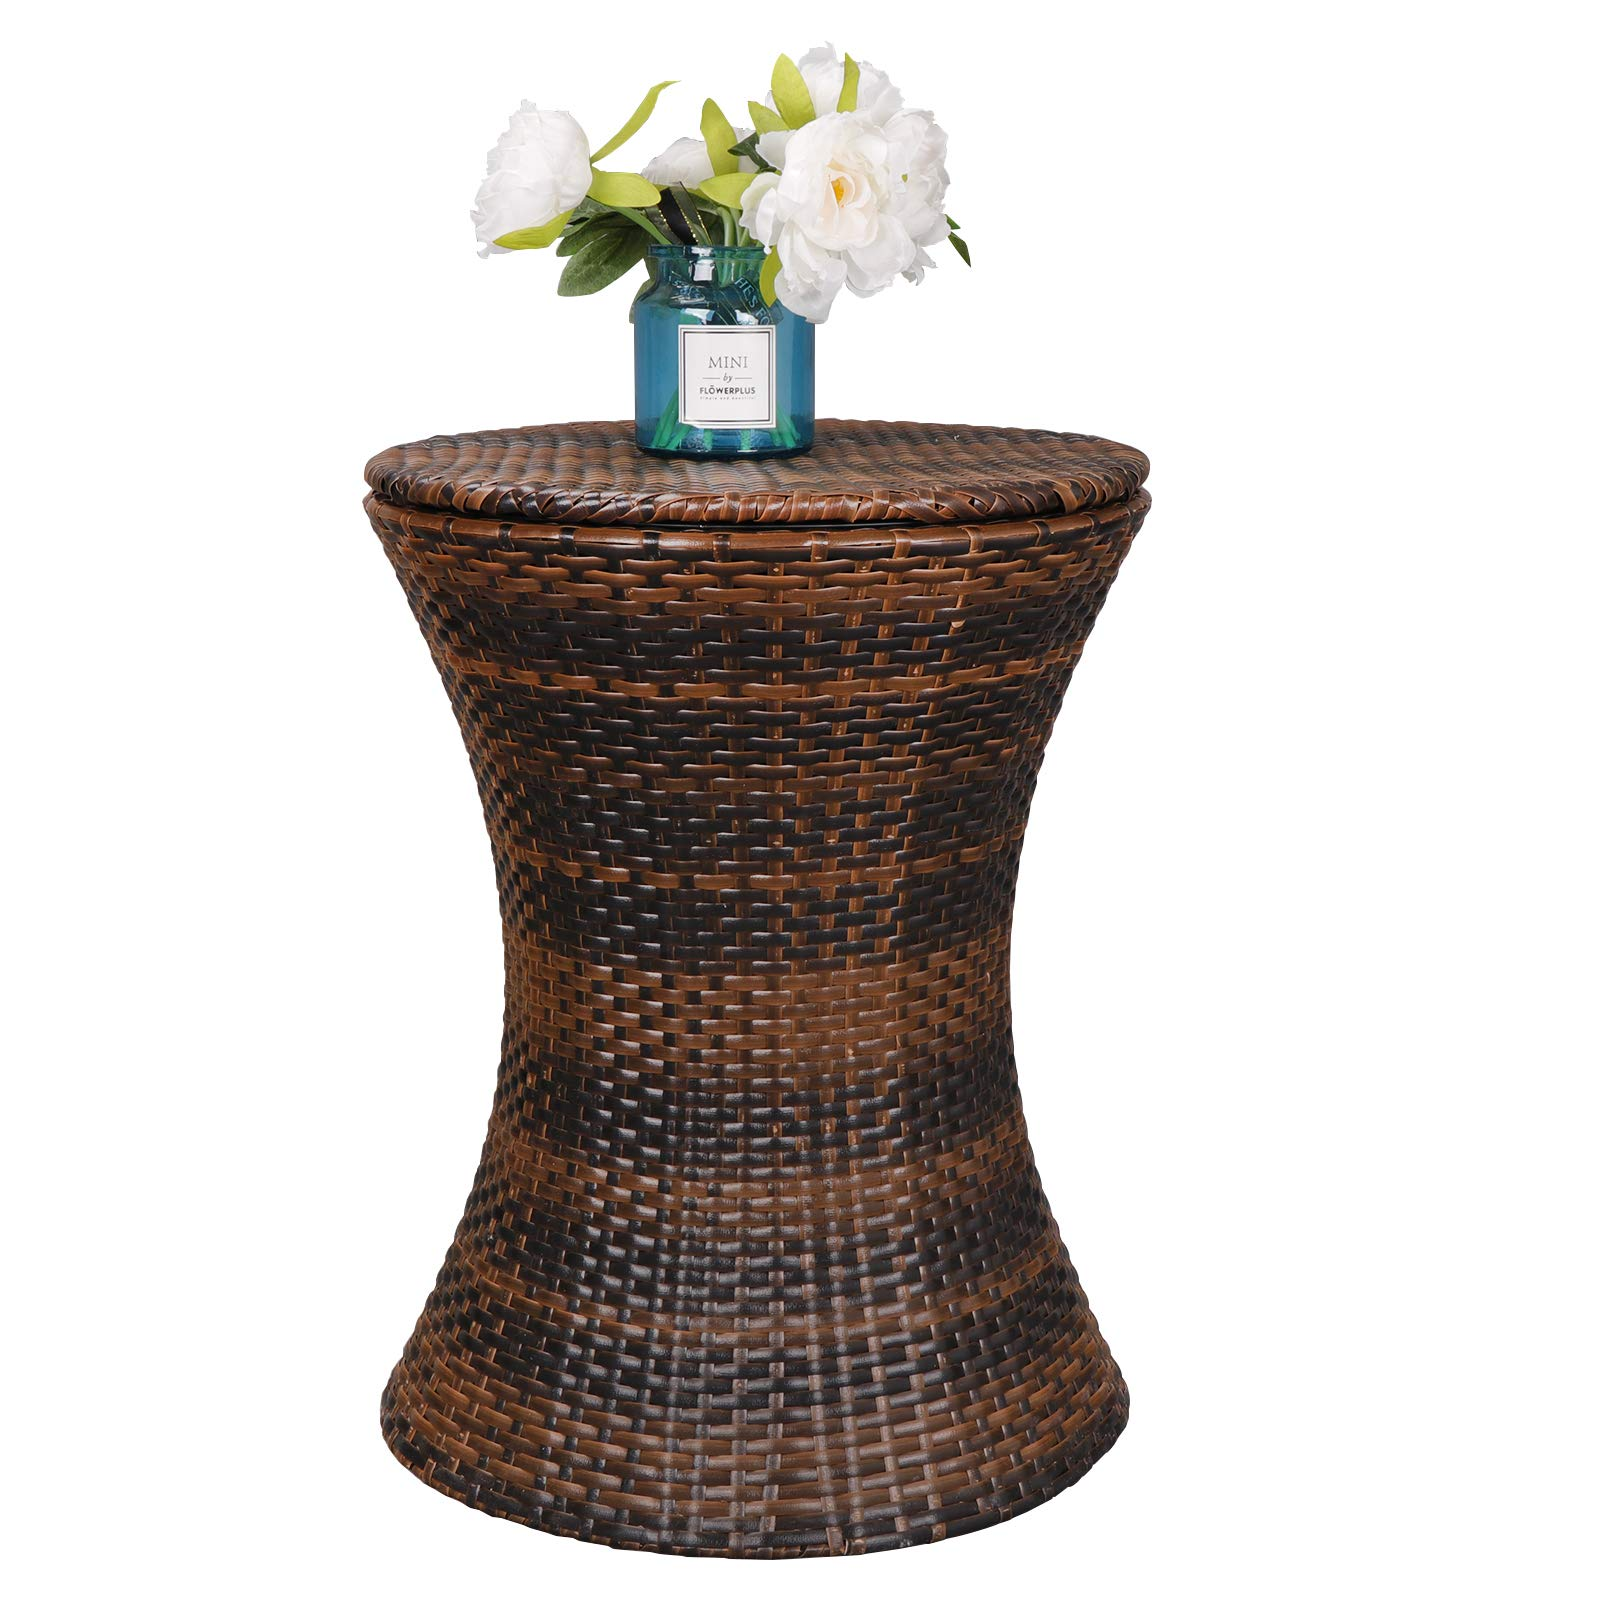 ZENY 5.5 Gallon Cool Bar Rattan Style Patio Pool Cooler Table W/Height Adjustable Top Outdoor Wicker Ice Bucket Cocktail Coffee Table for Party Deck Pool Use, Brown by ZENY (Image #4)